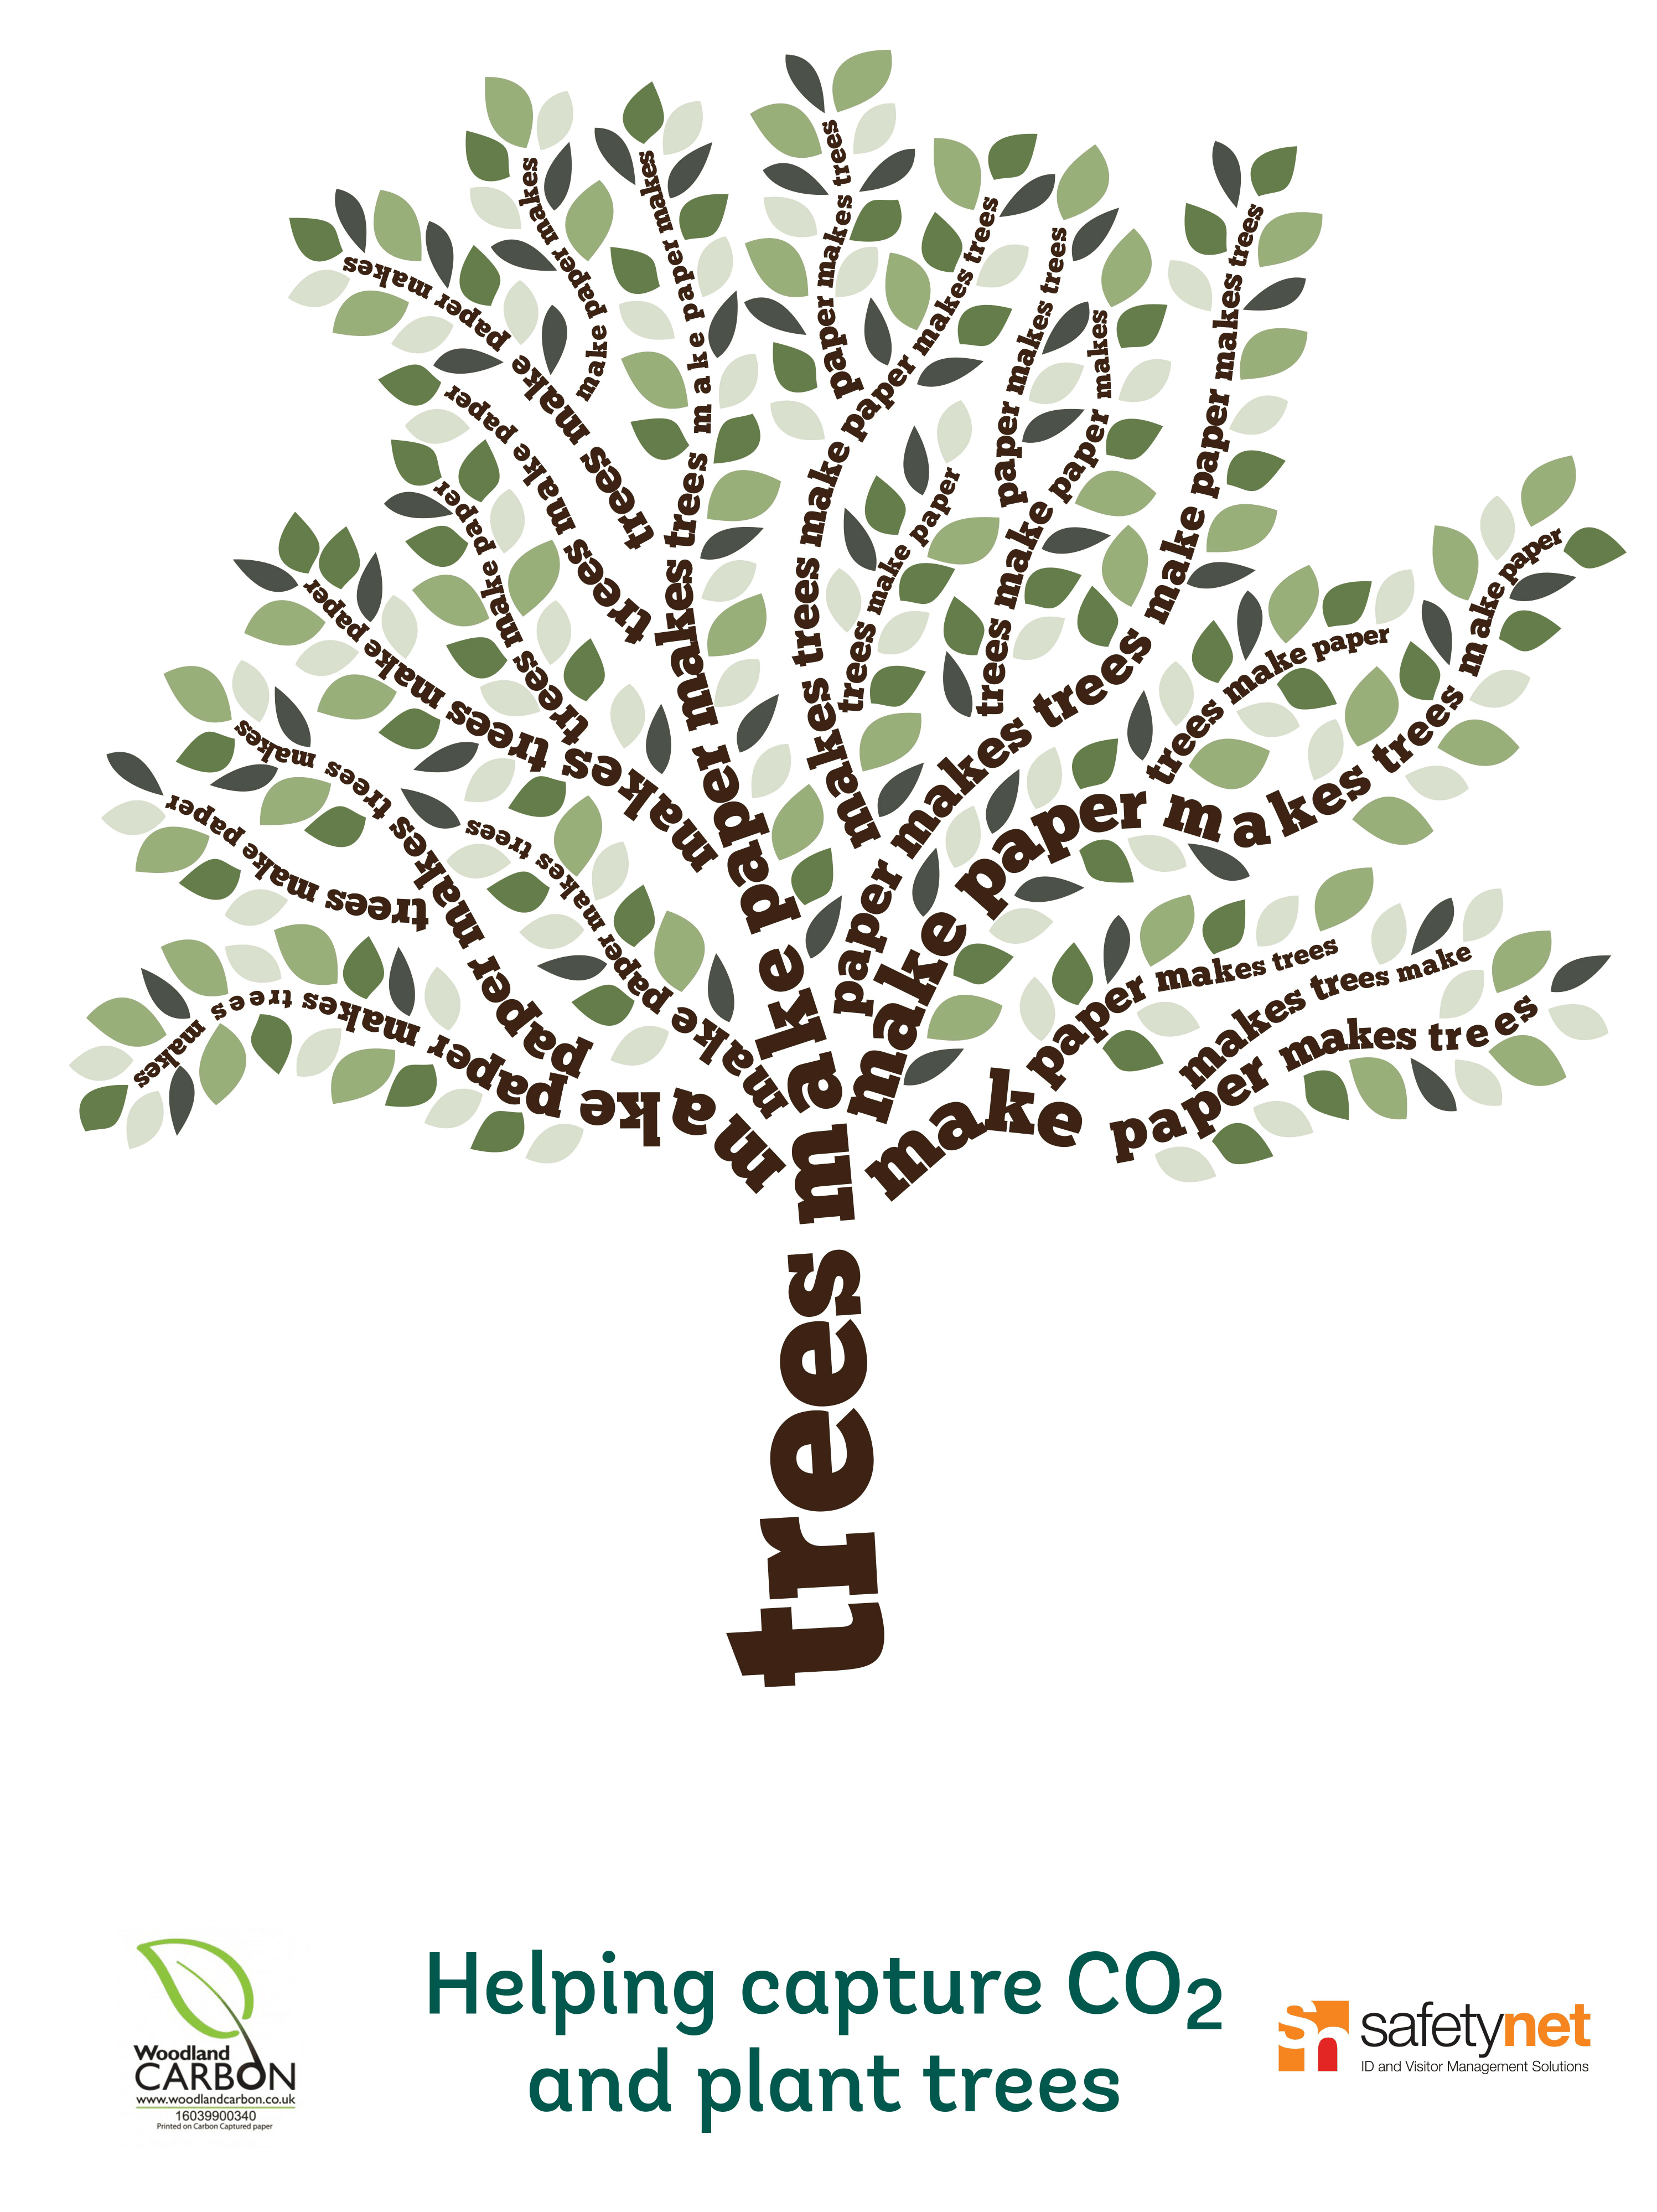 Trees make paper poster